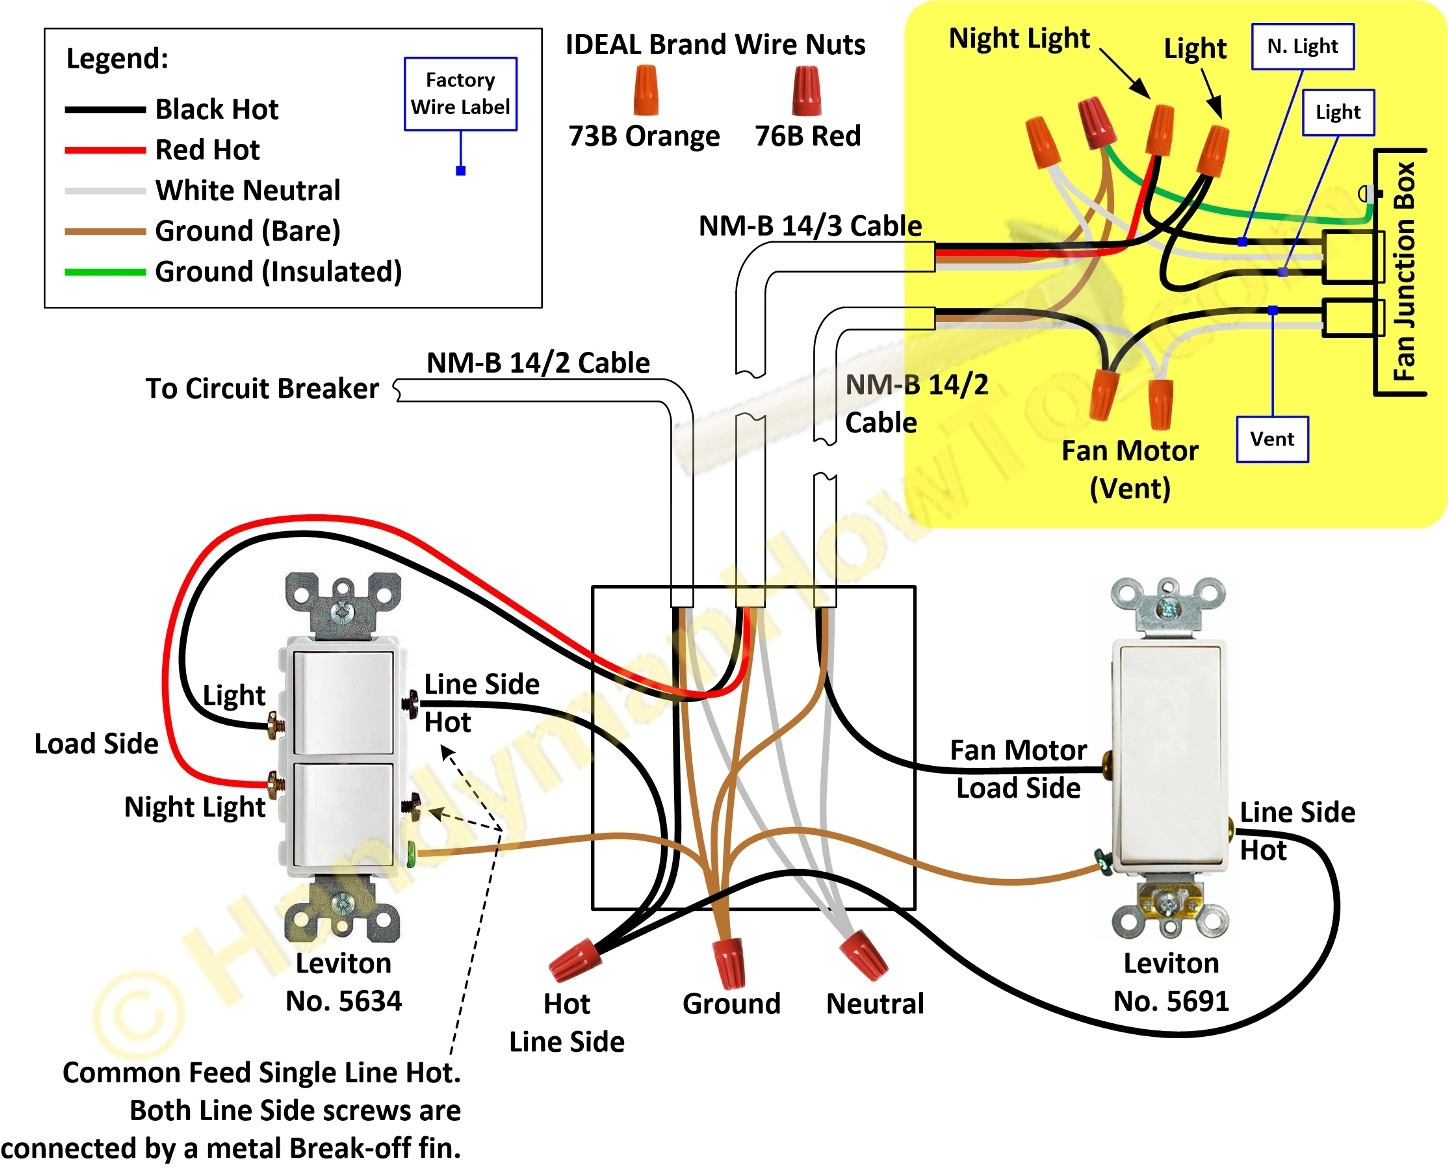 meyer plow wiring diagram Collection-wiring diagram for meyer snow plow Download Meyer Snow Plow Wiring Diagram E47 3 Bright DOWNLOAD Wiring Diagram 19-k